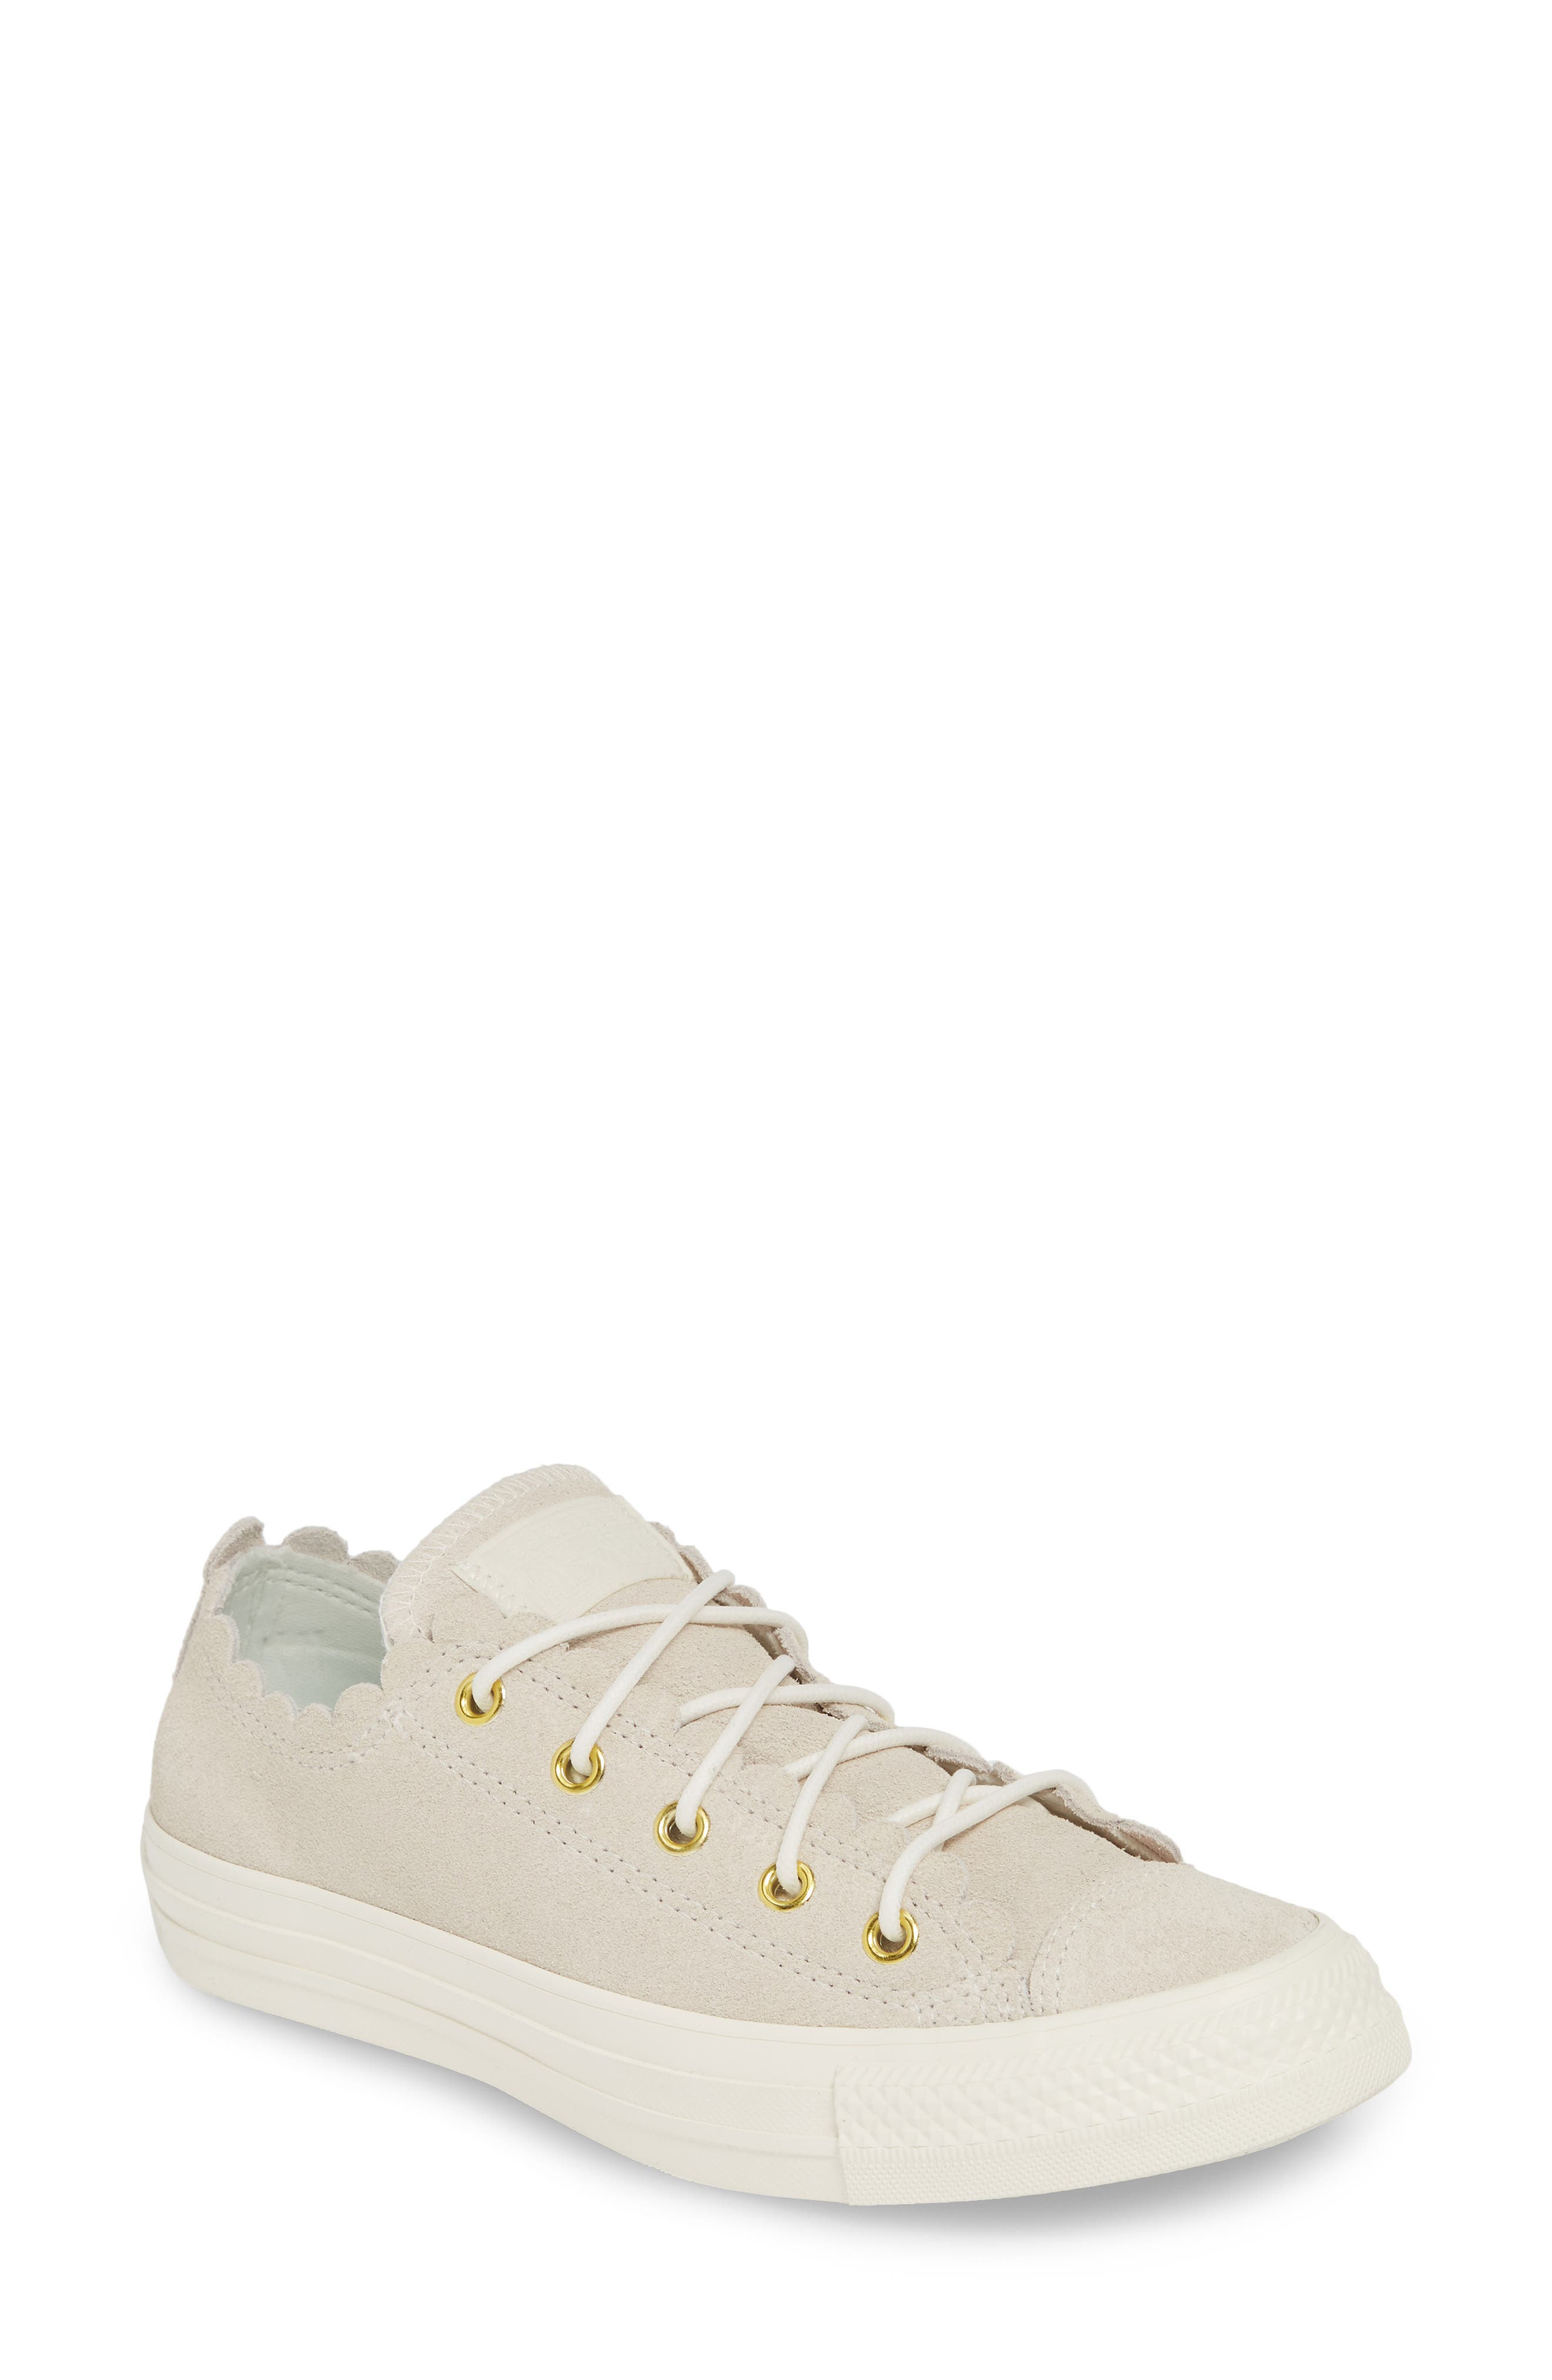 Converse Chuck Taylor All Star Scallop Low Top Leather Sneaker- Grey